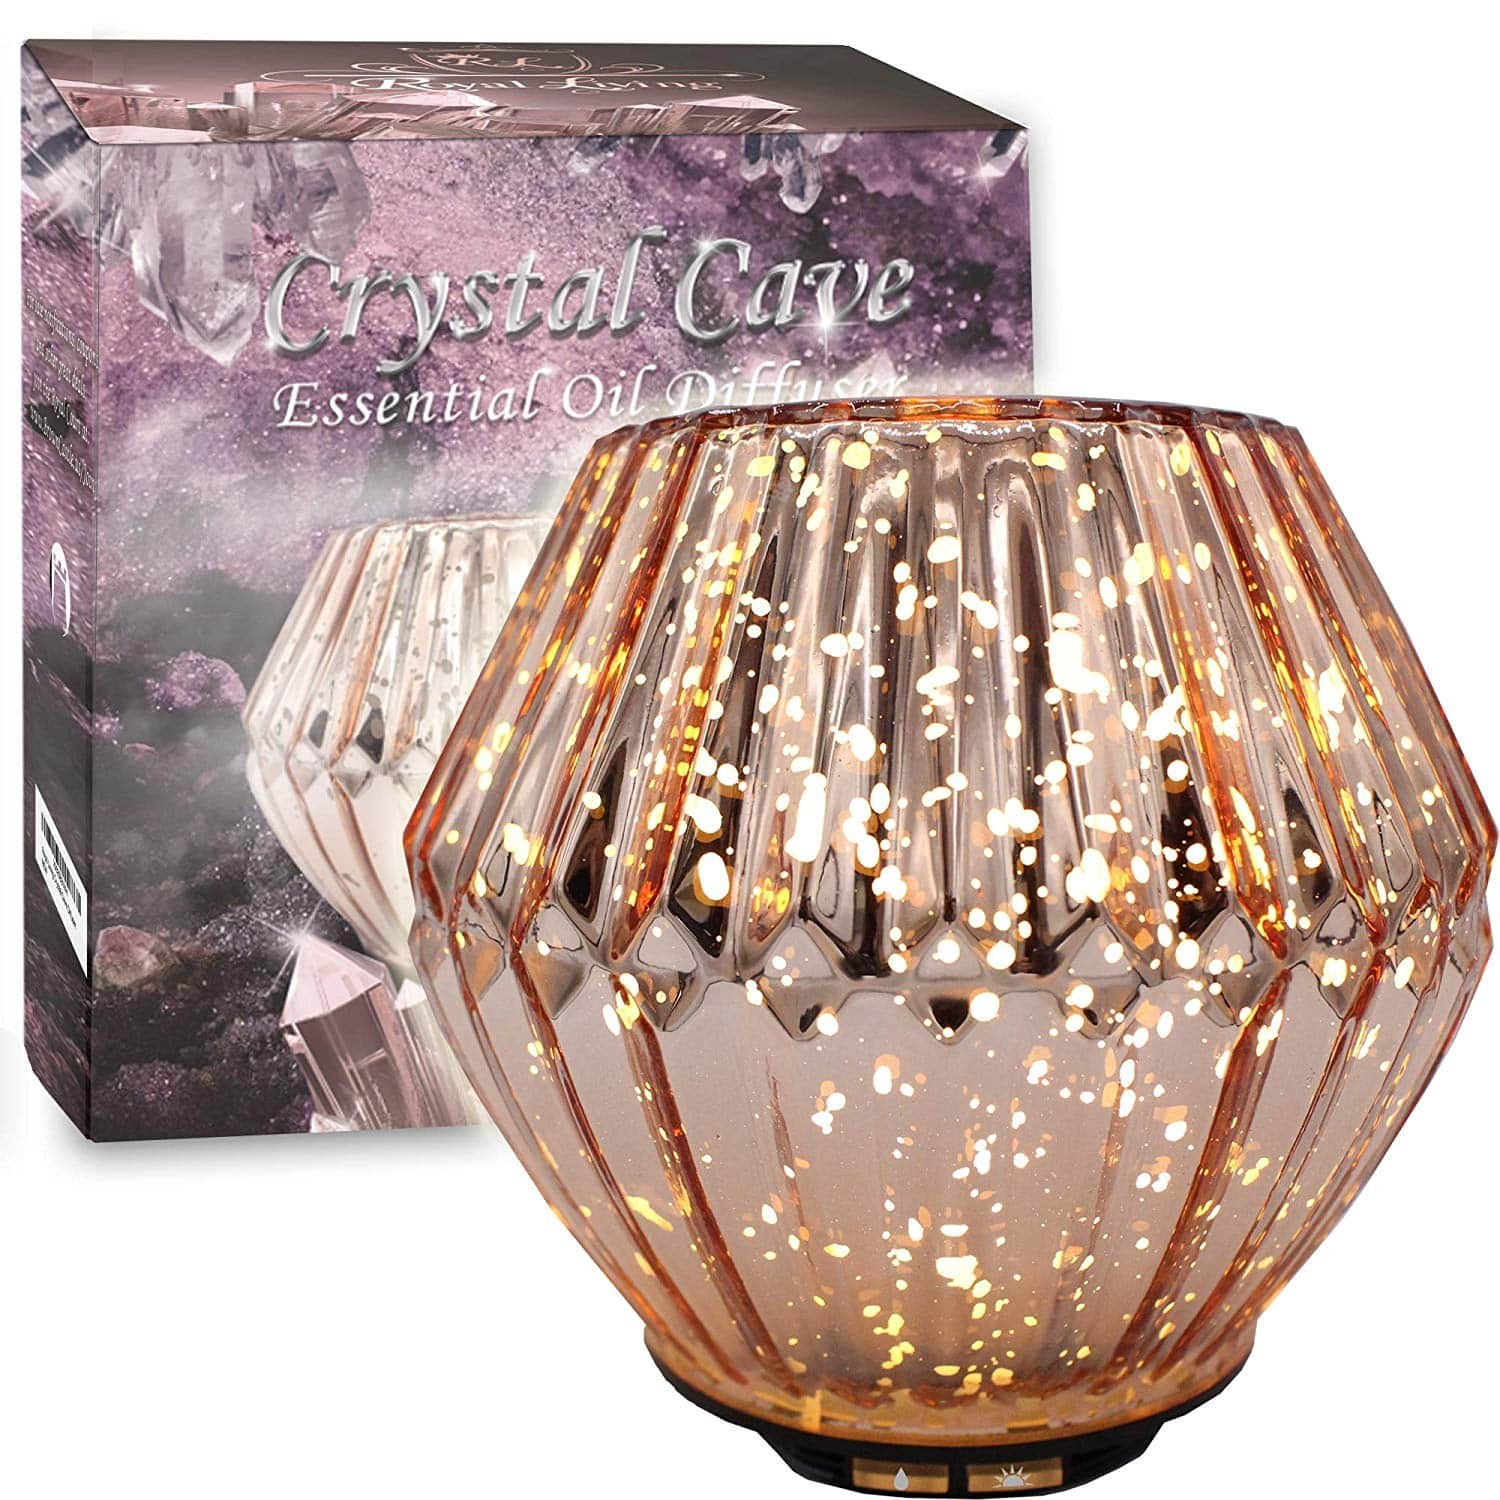 Royal Living Crystal Cave Essential Oil Diffuser